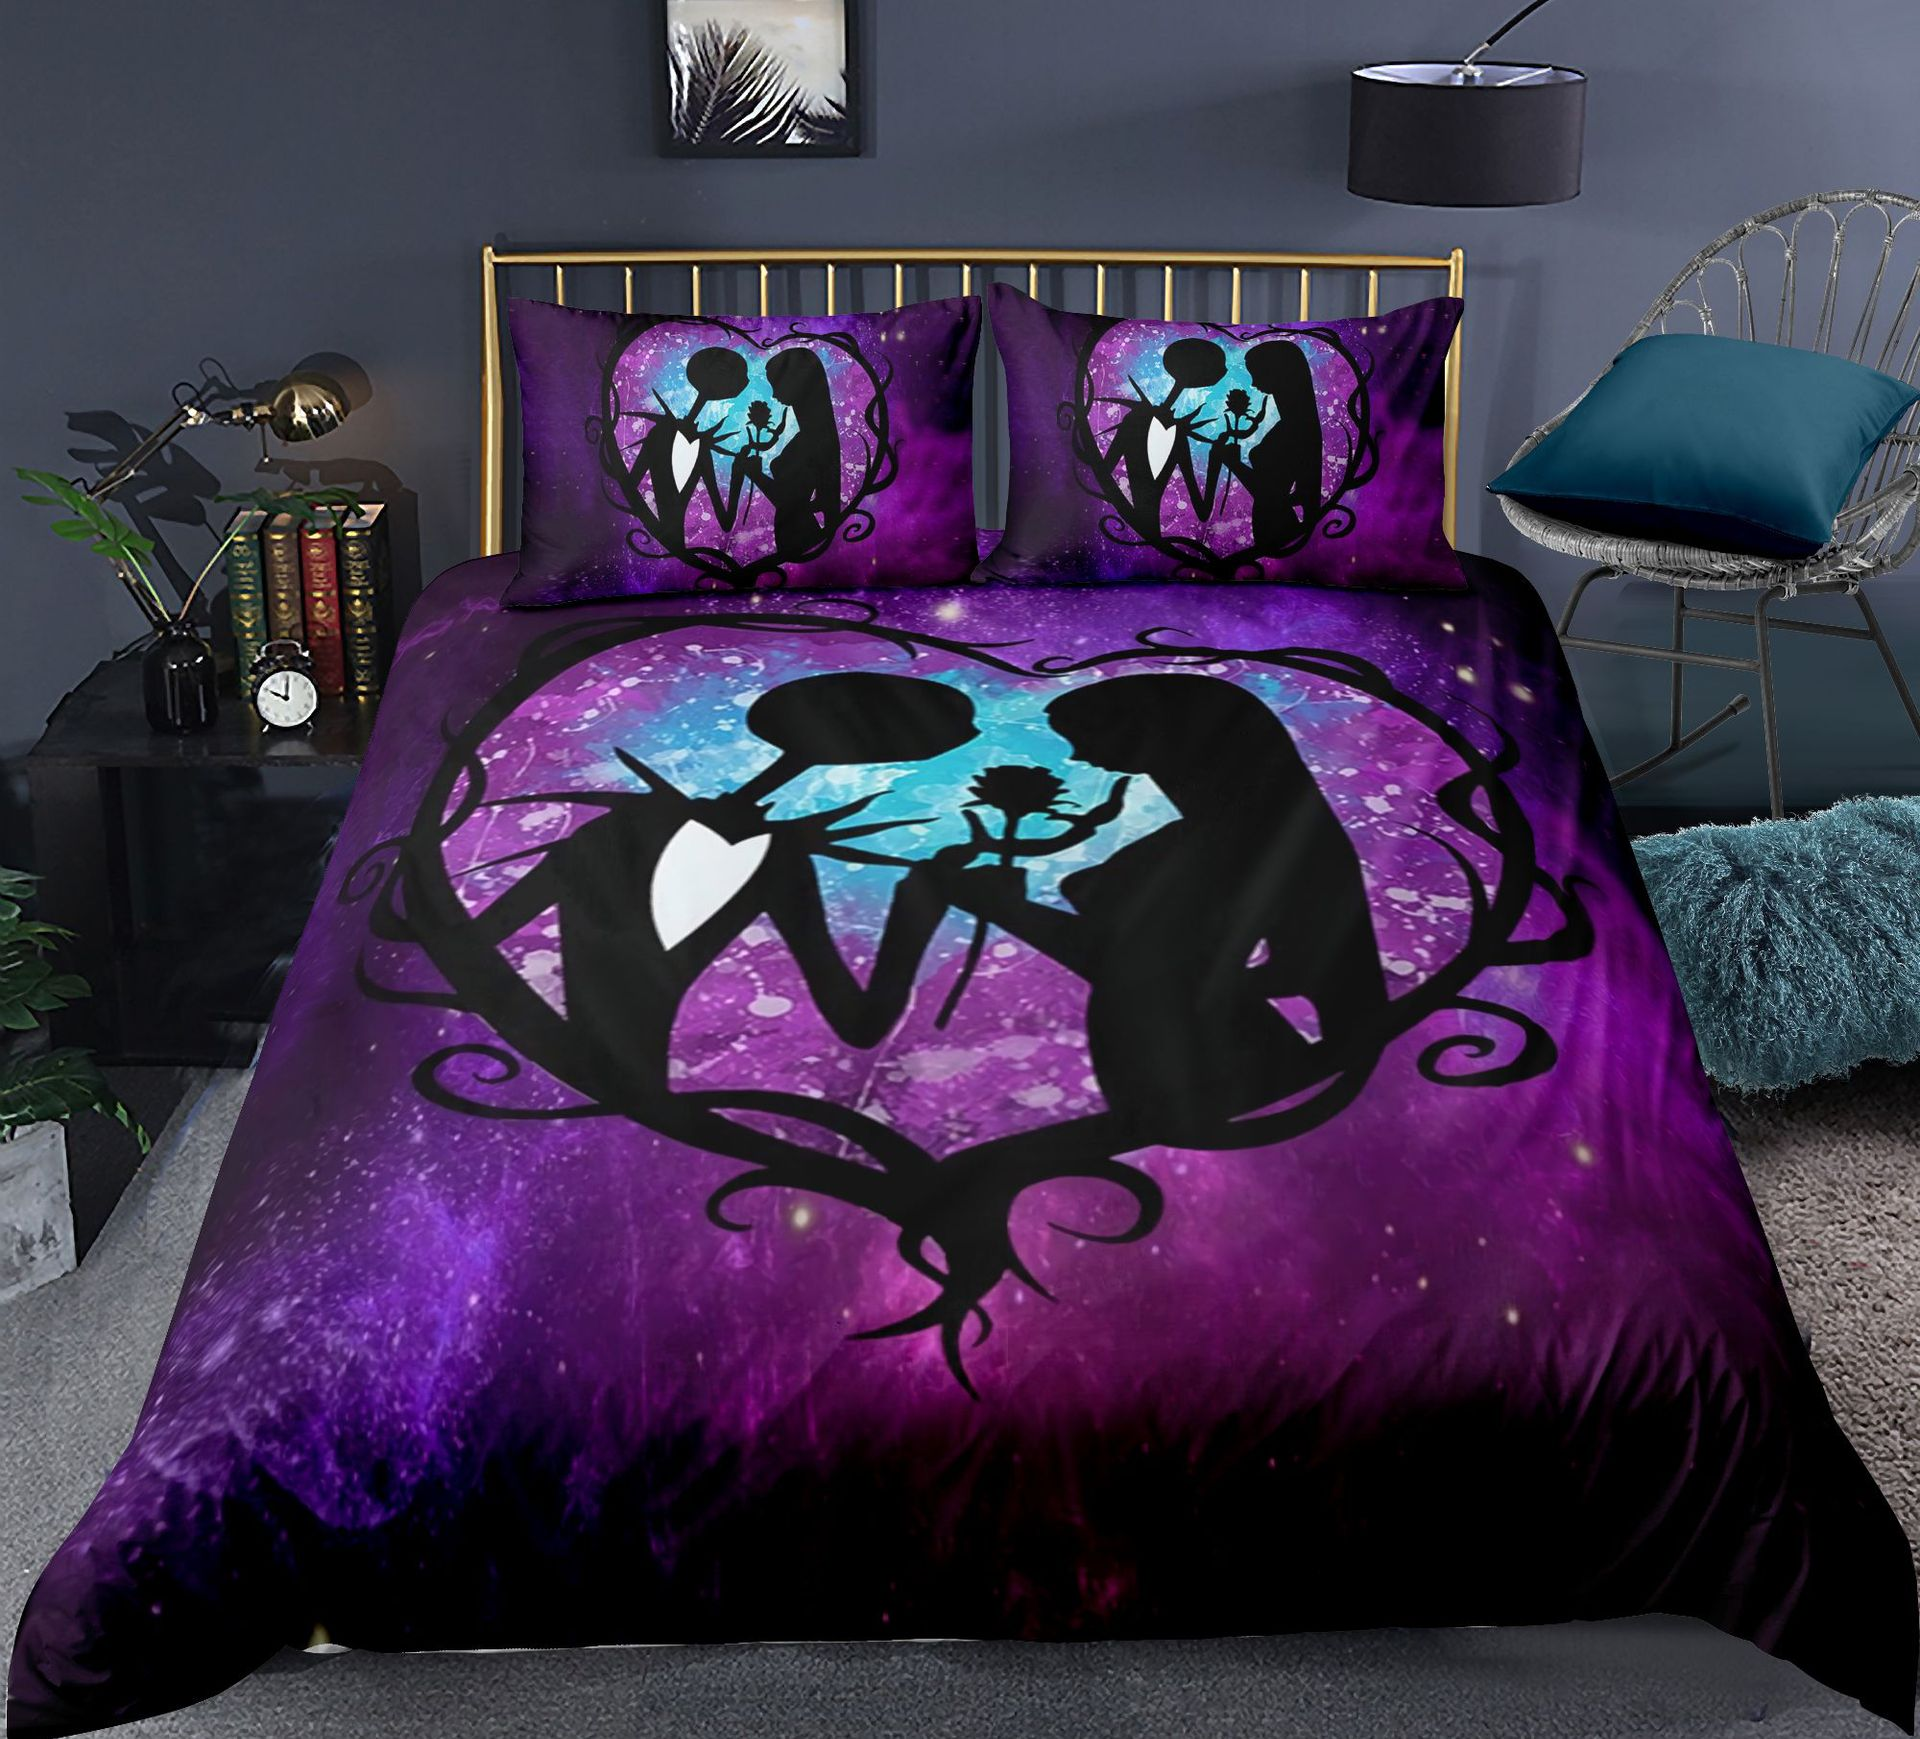 Nightmare Before Christmas Rose Bedding Set For Bedroom Soft Bedspreads Comefortable Duvet Cover Quilt Cover And Pillowcase nightmare before christmas 4pcs bedding set duvet cover bedspread pillowcases